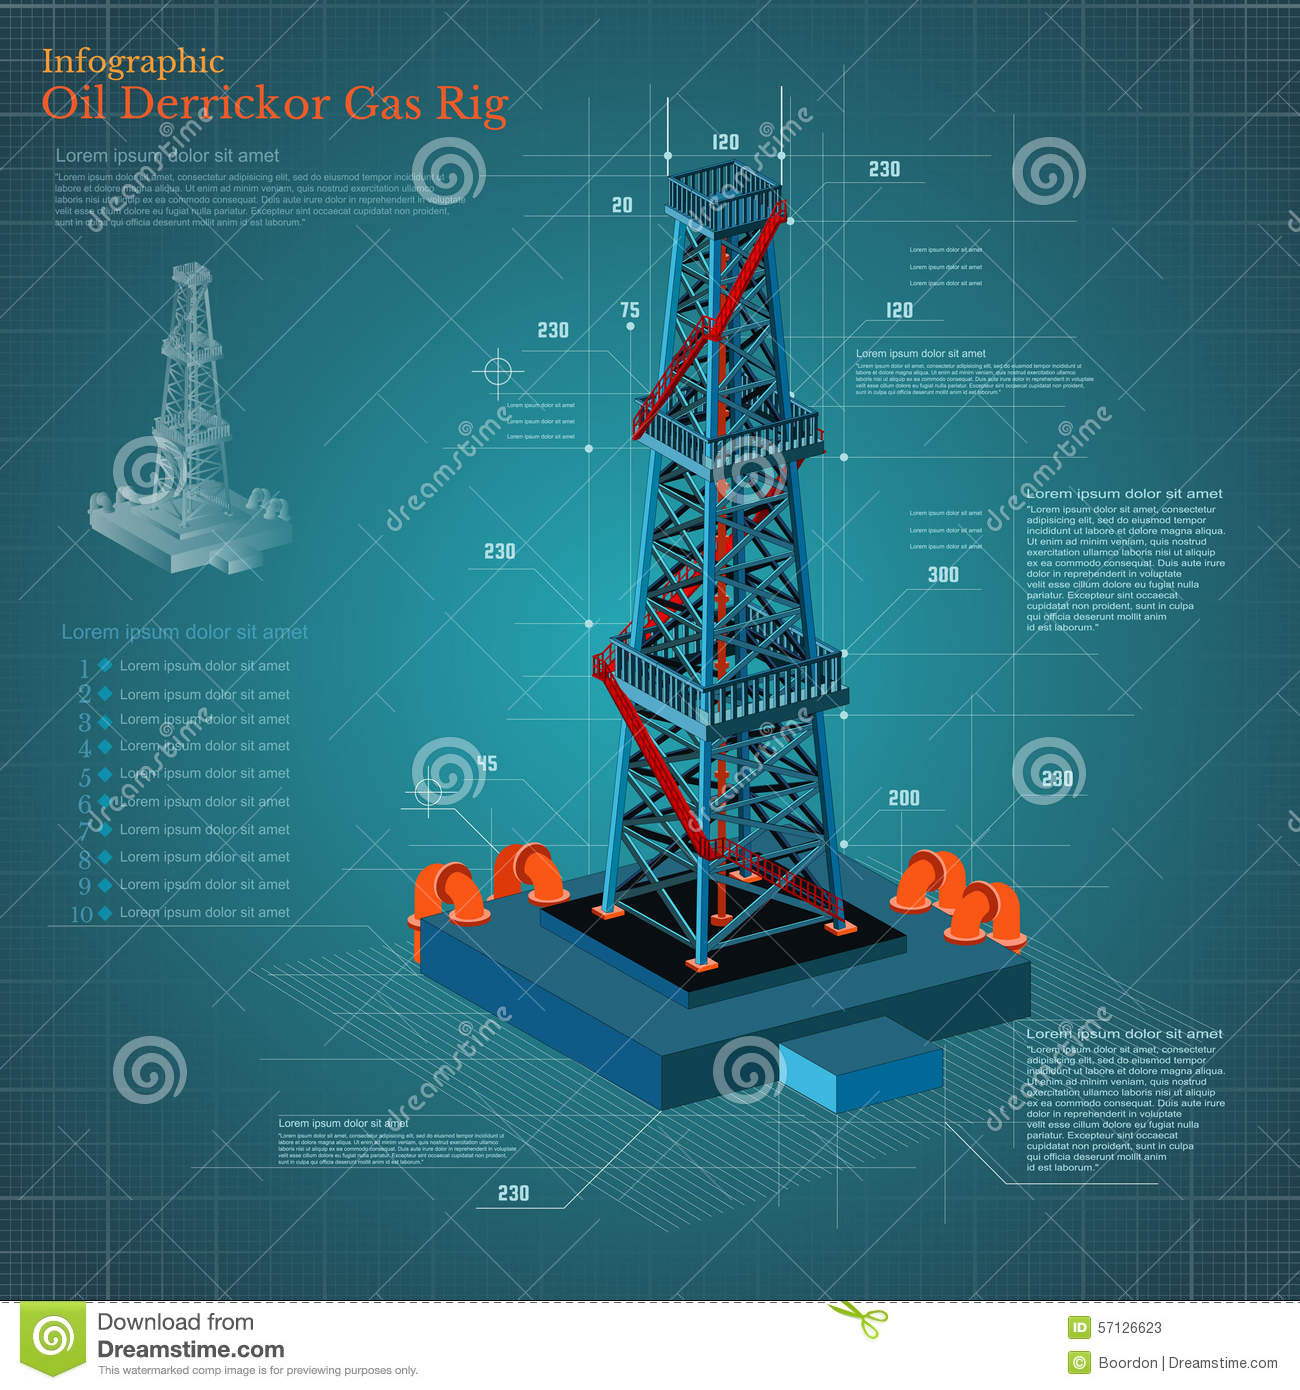 z rig diagram trailer brake wiring ford f250 oil derrick tower or gas infographic on blue scheme